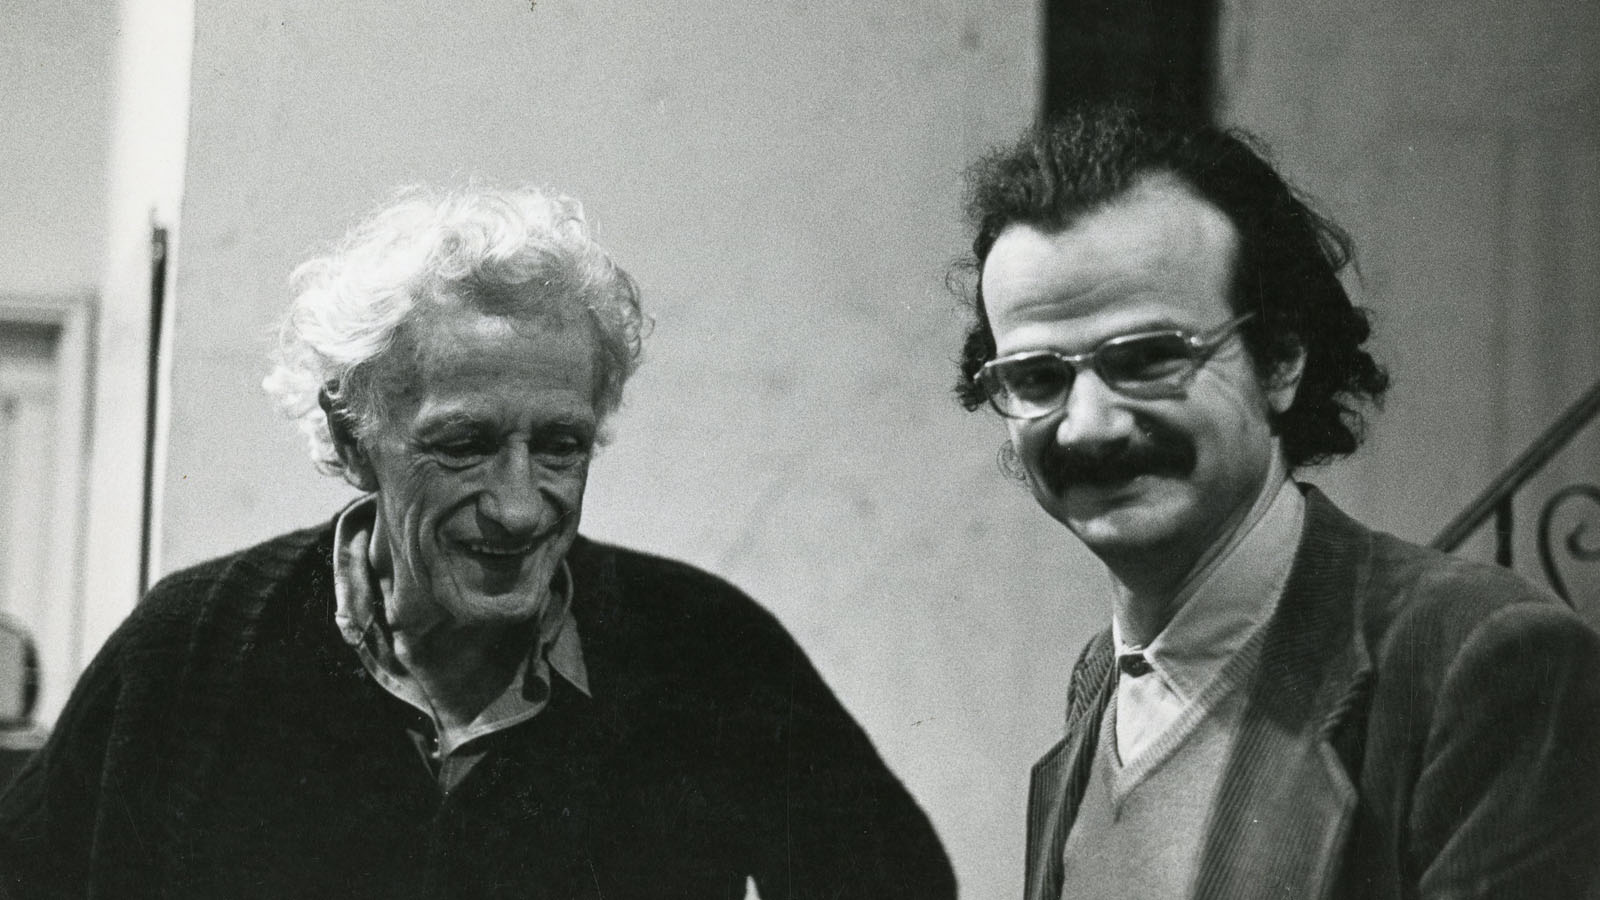 Serge Daney with Nicholas Ray